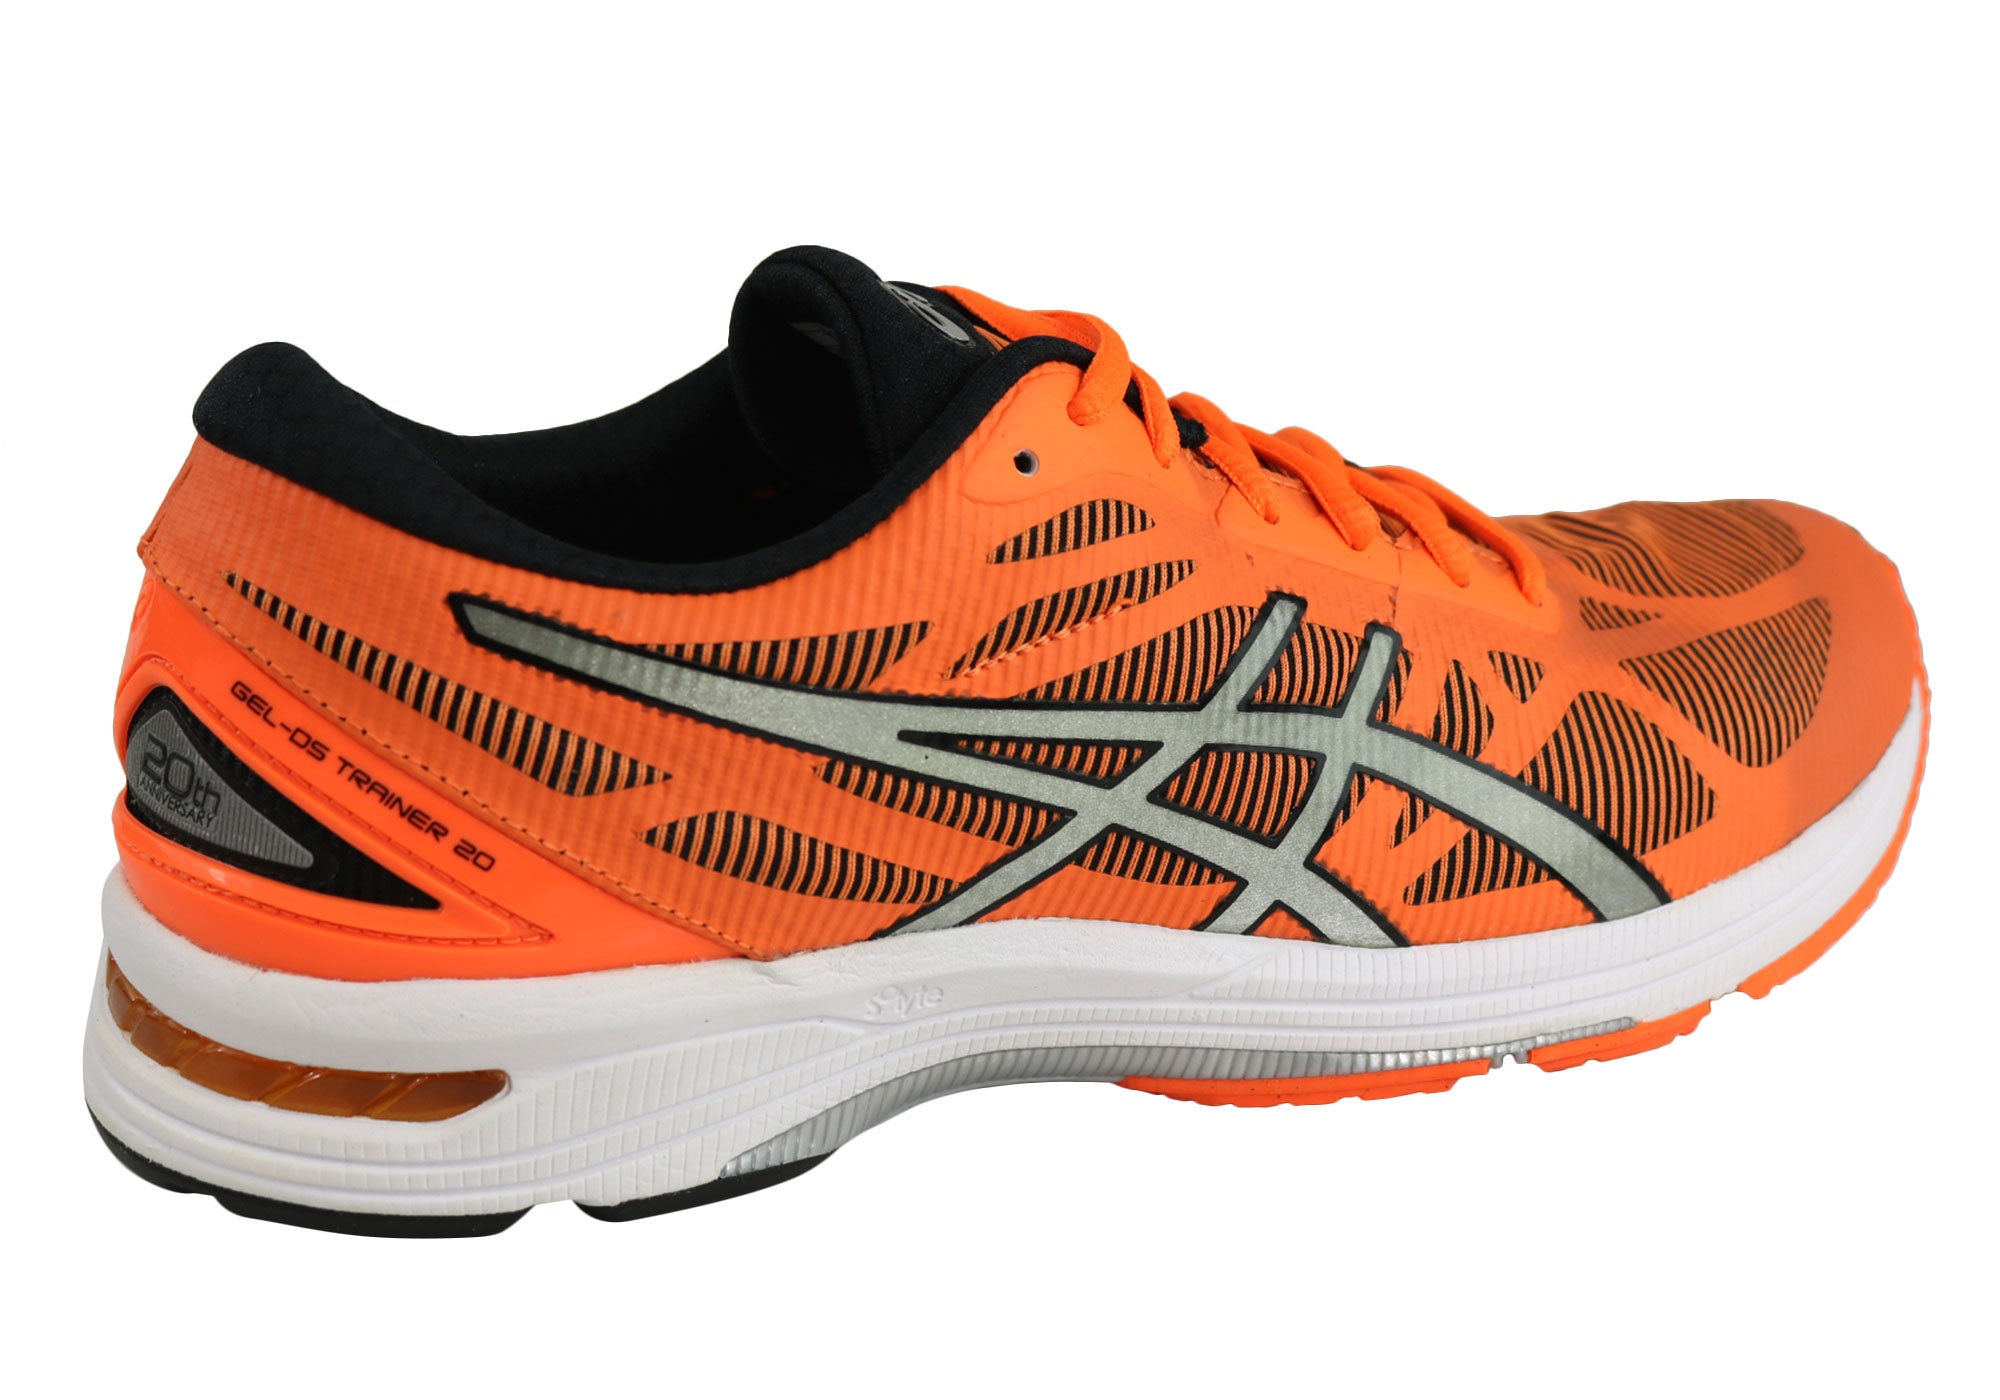 release date f0321 2283e Asics Mens Gel-Ds Trainer 20 Cushioned Comfortable Trainers ...